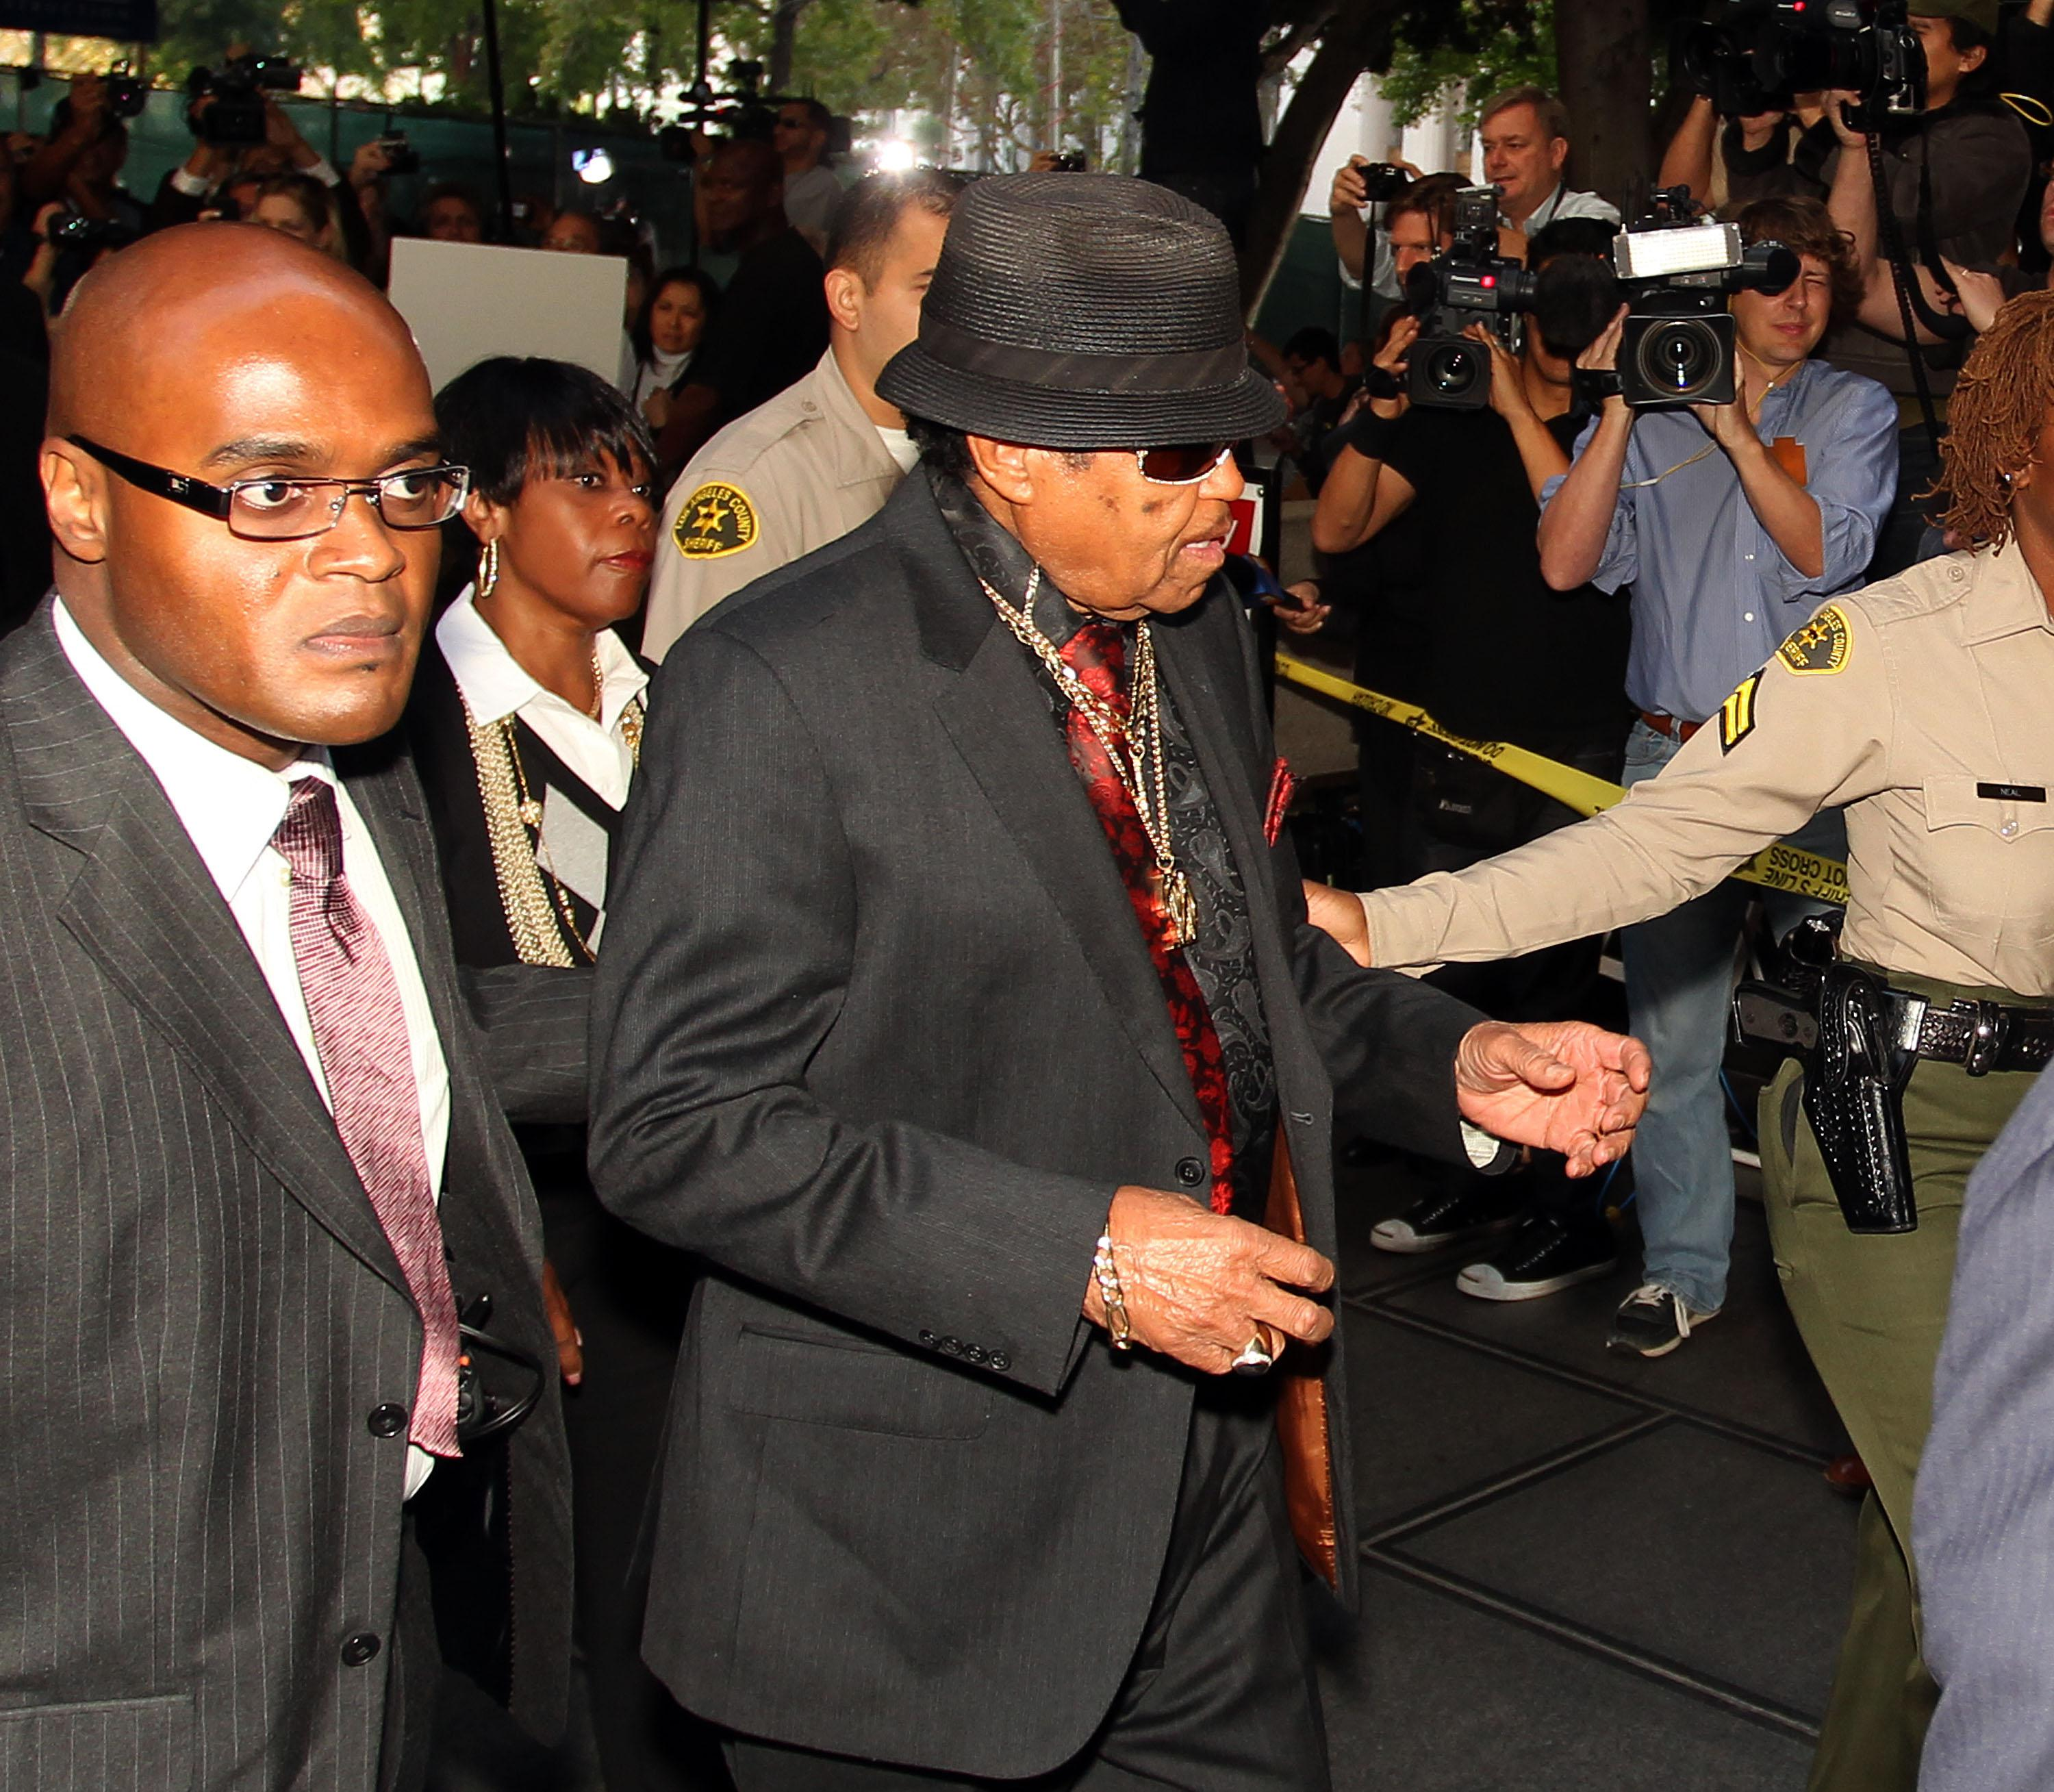 Opening Statements Scheduled For The Trial Of Dr. Conrad Murray